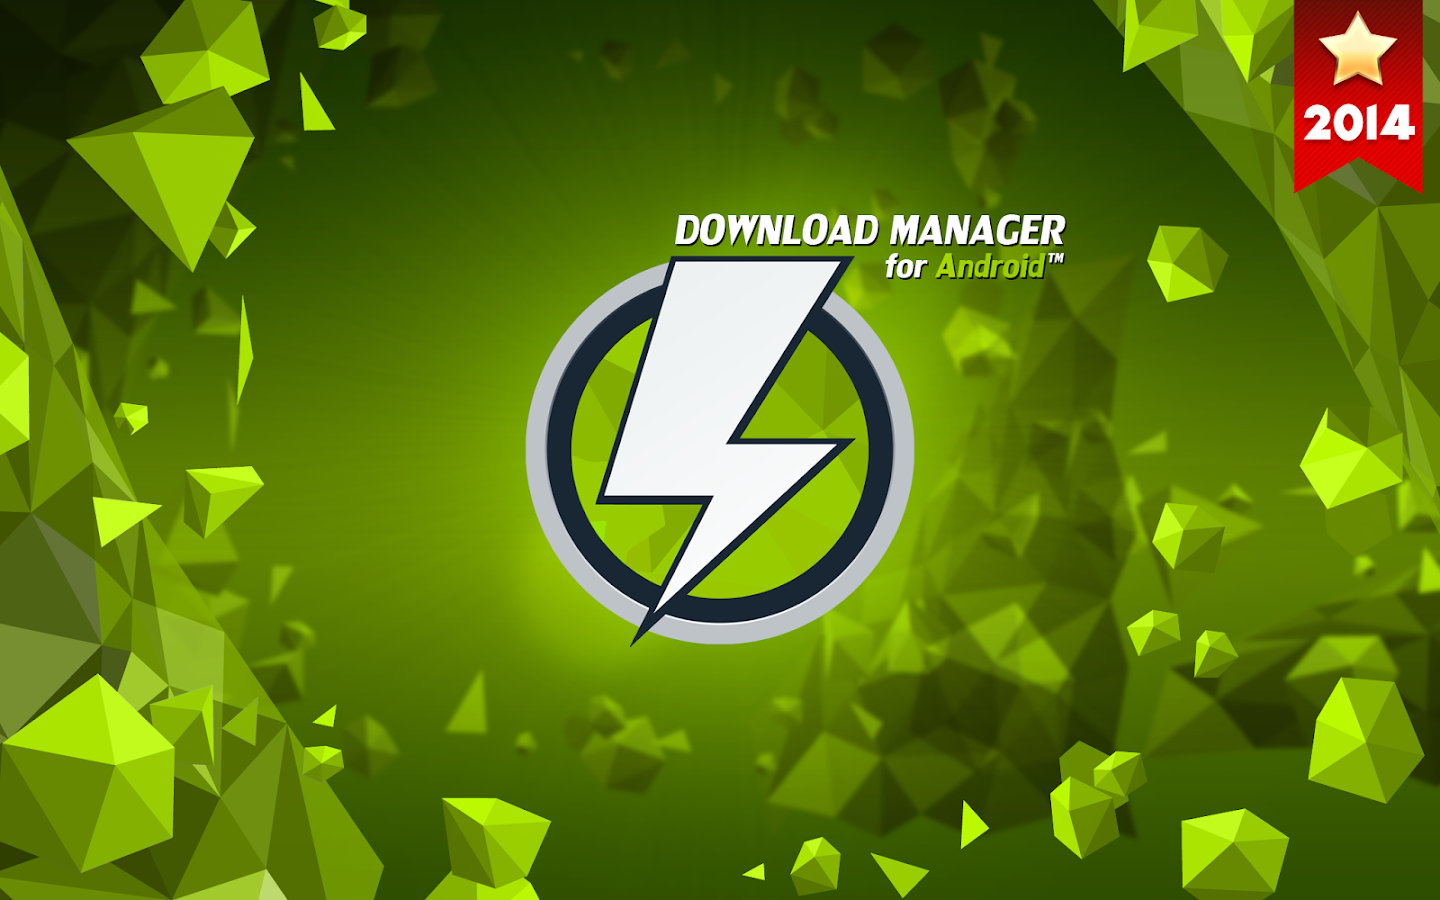 Download Manager App For Android